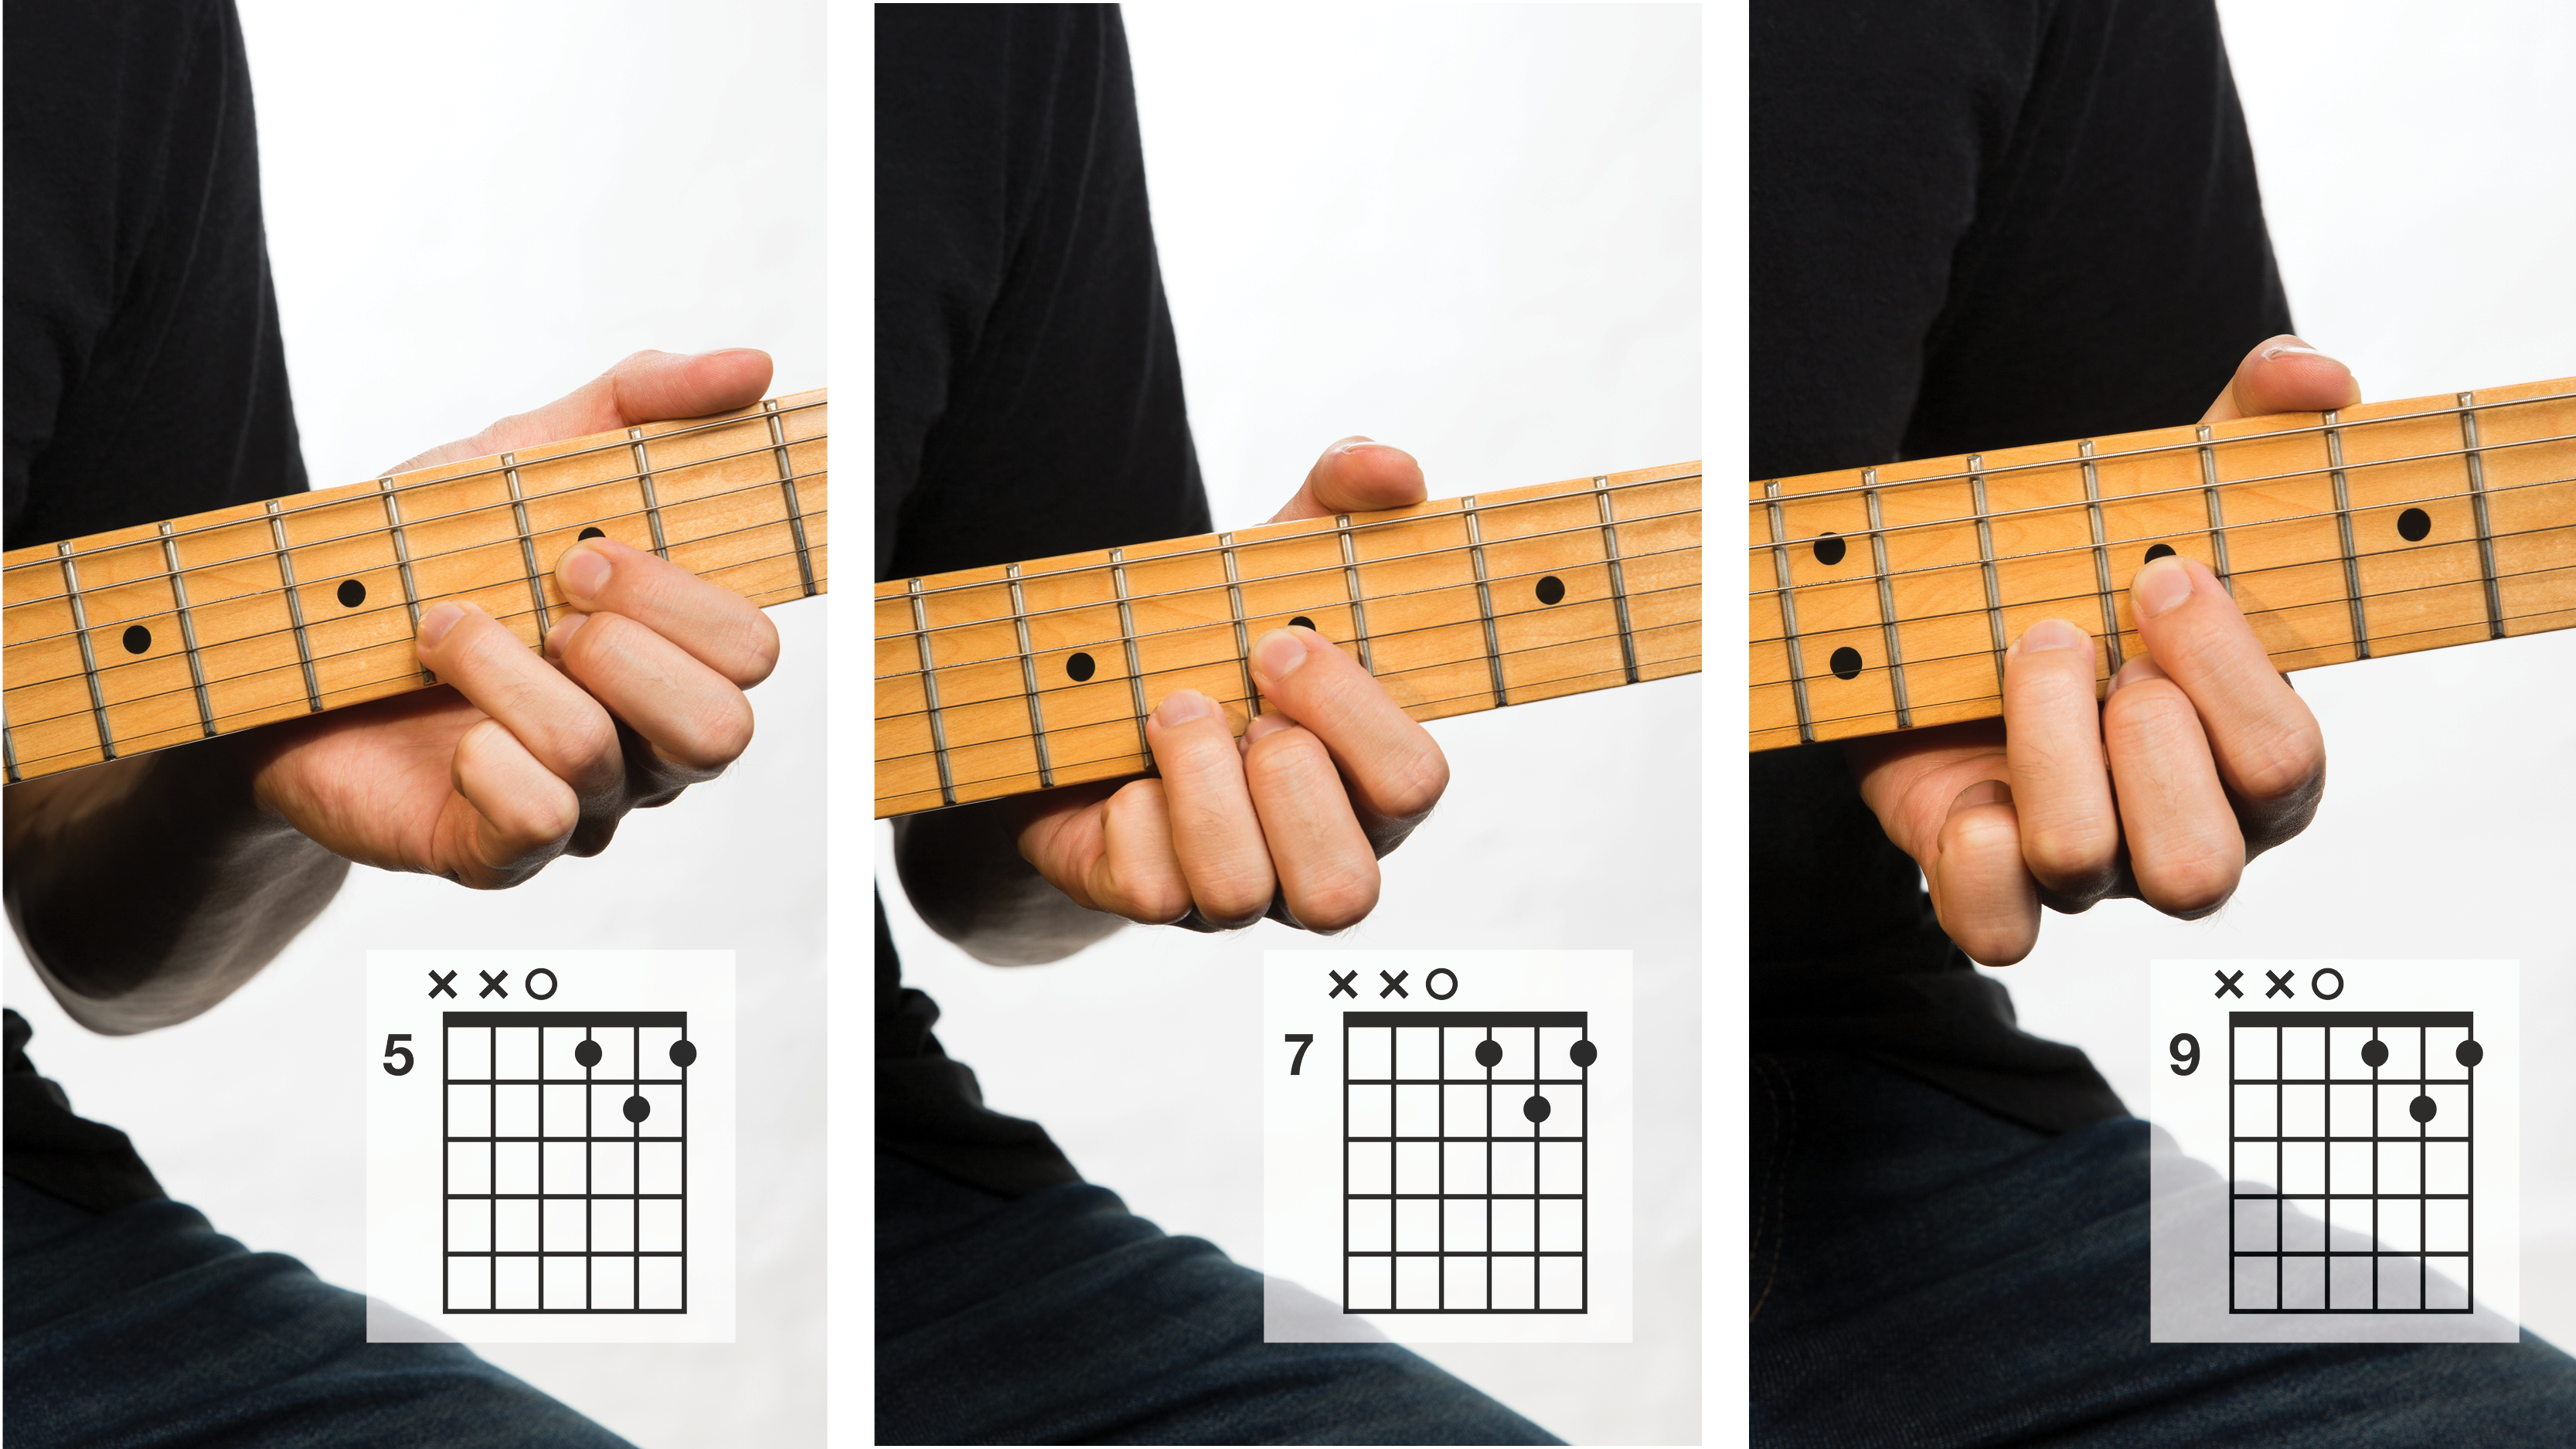 Modified D chord shapes